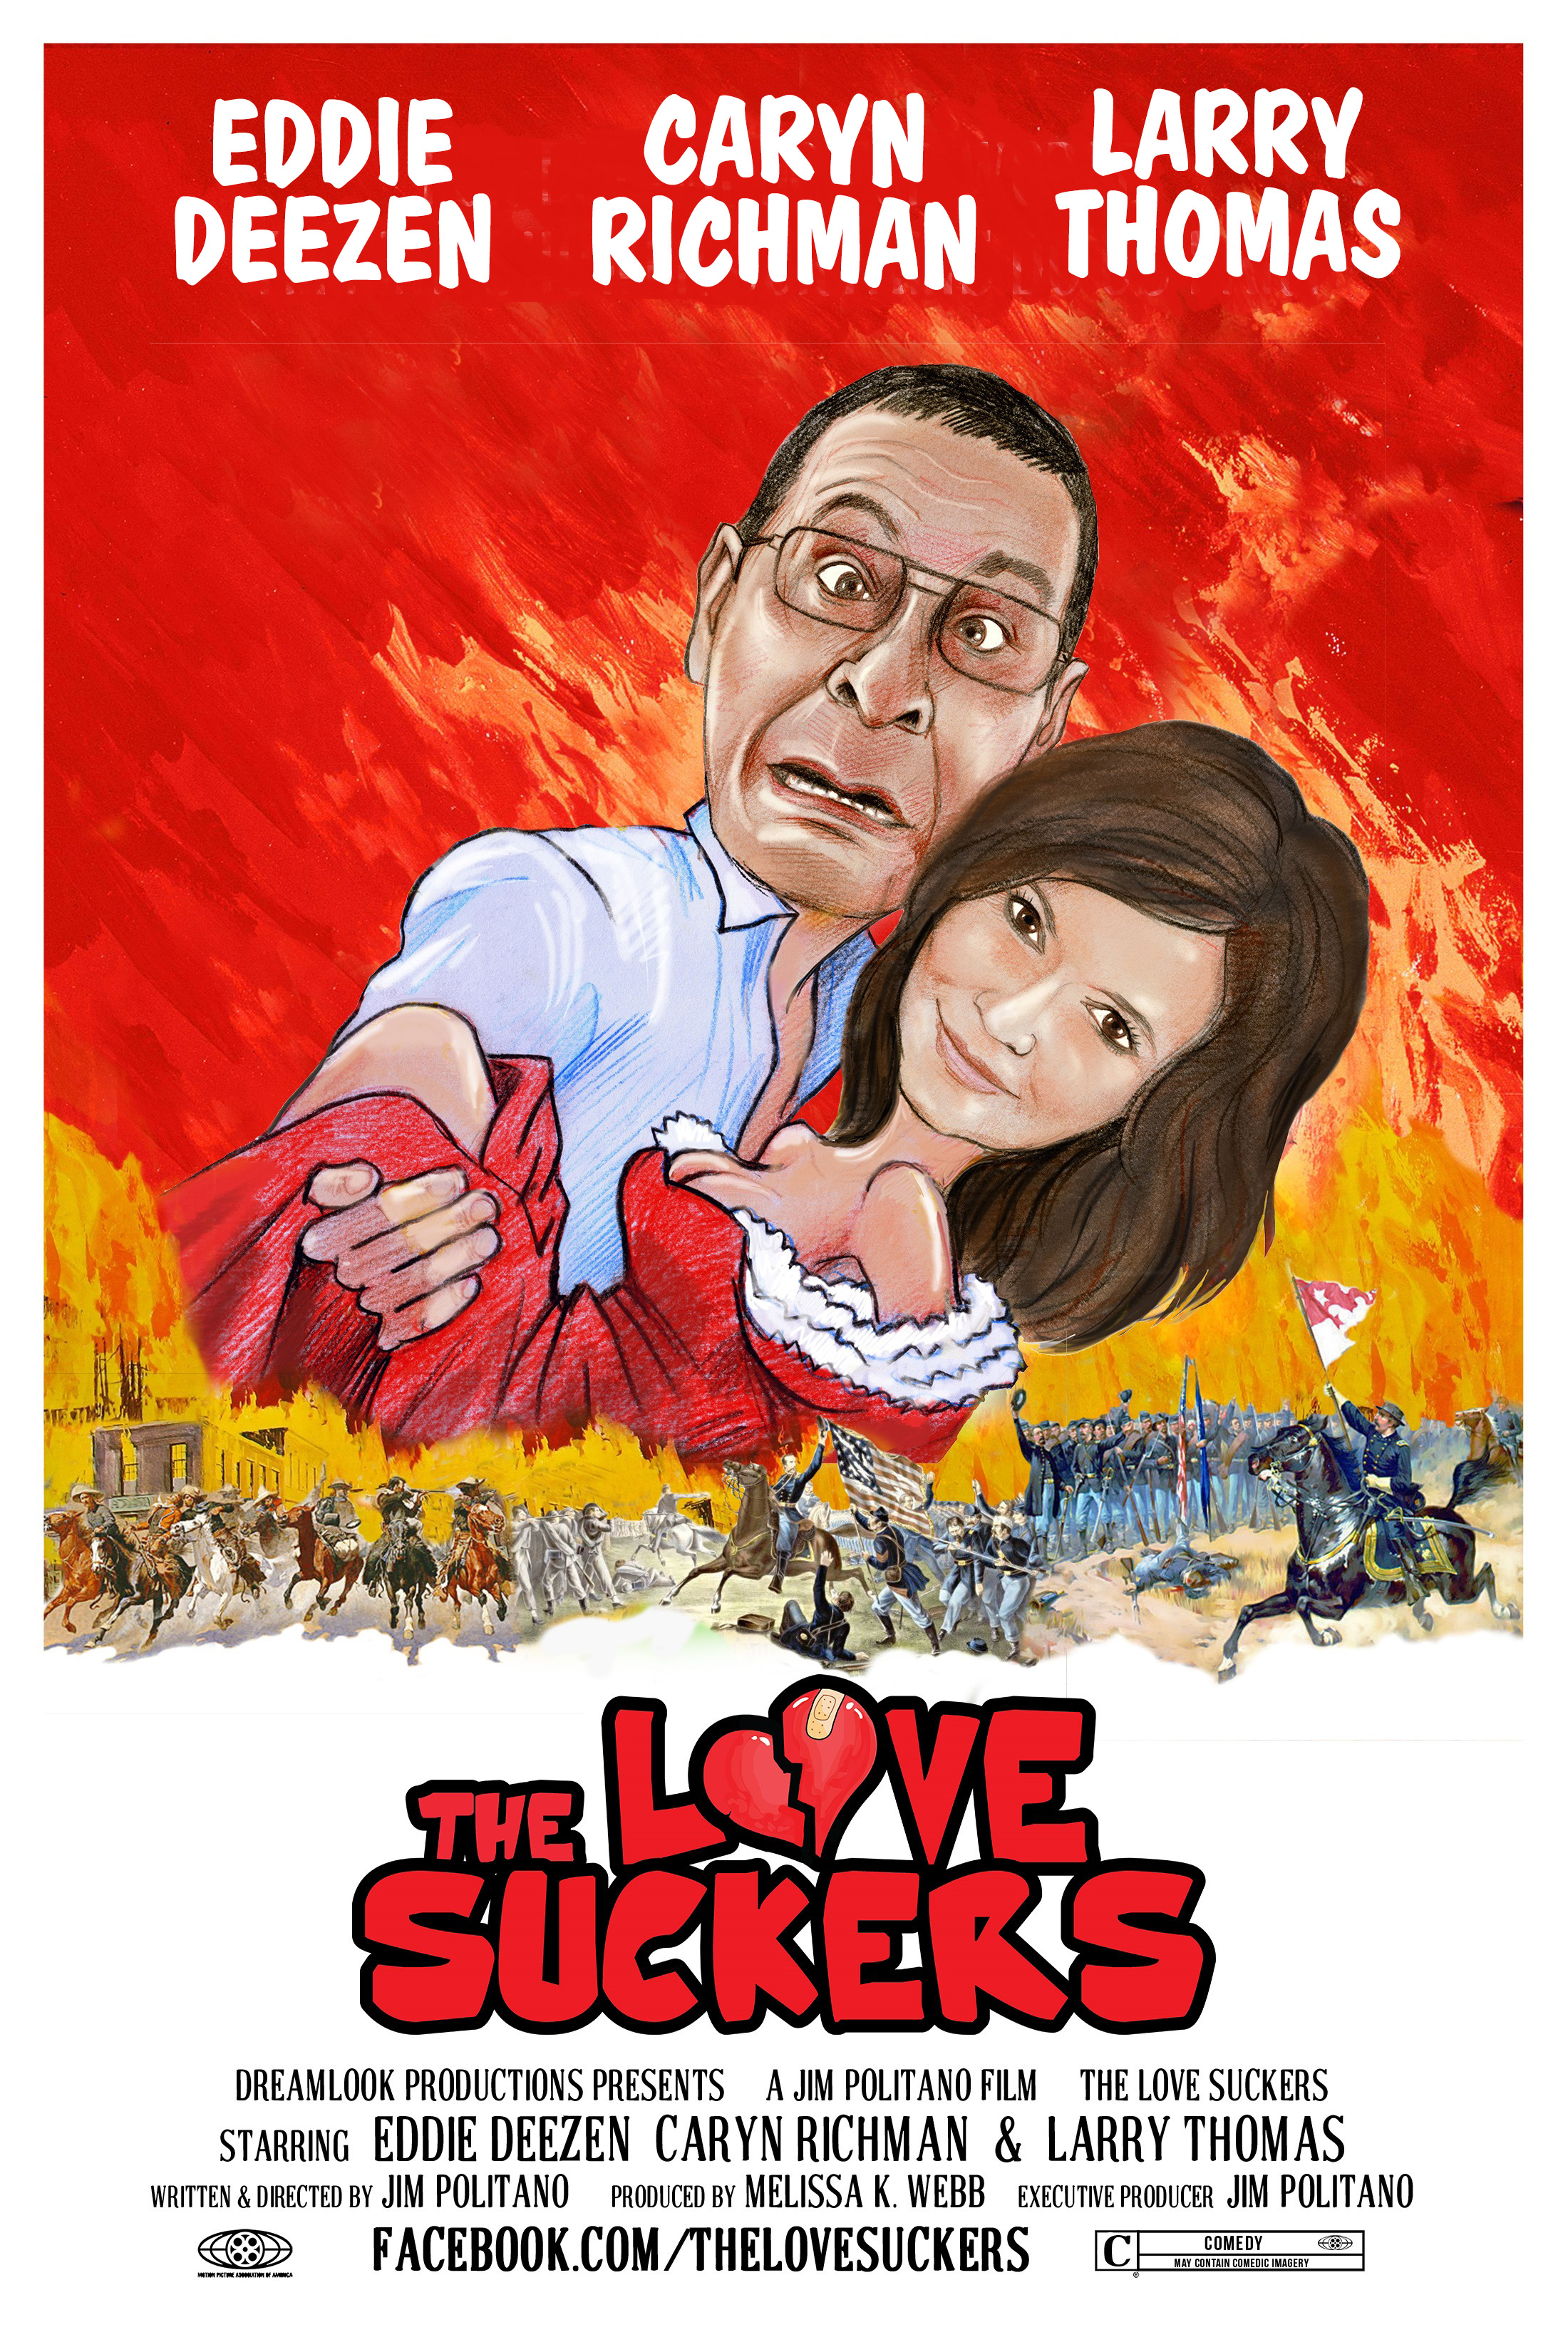 THE LOVE SUCKERS POSTER 2018 9.jpg